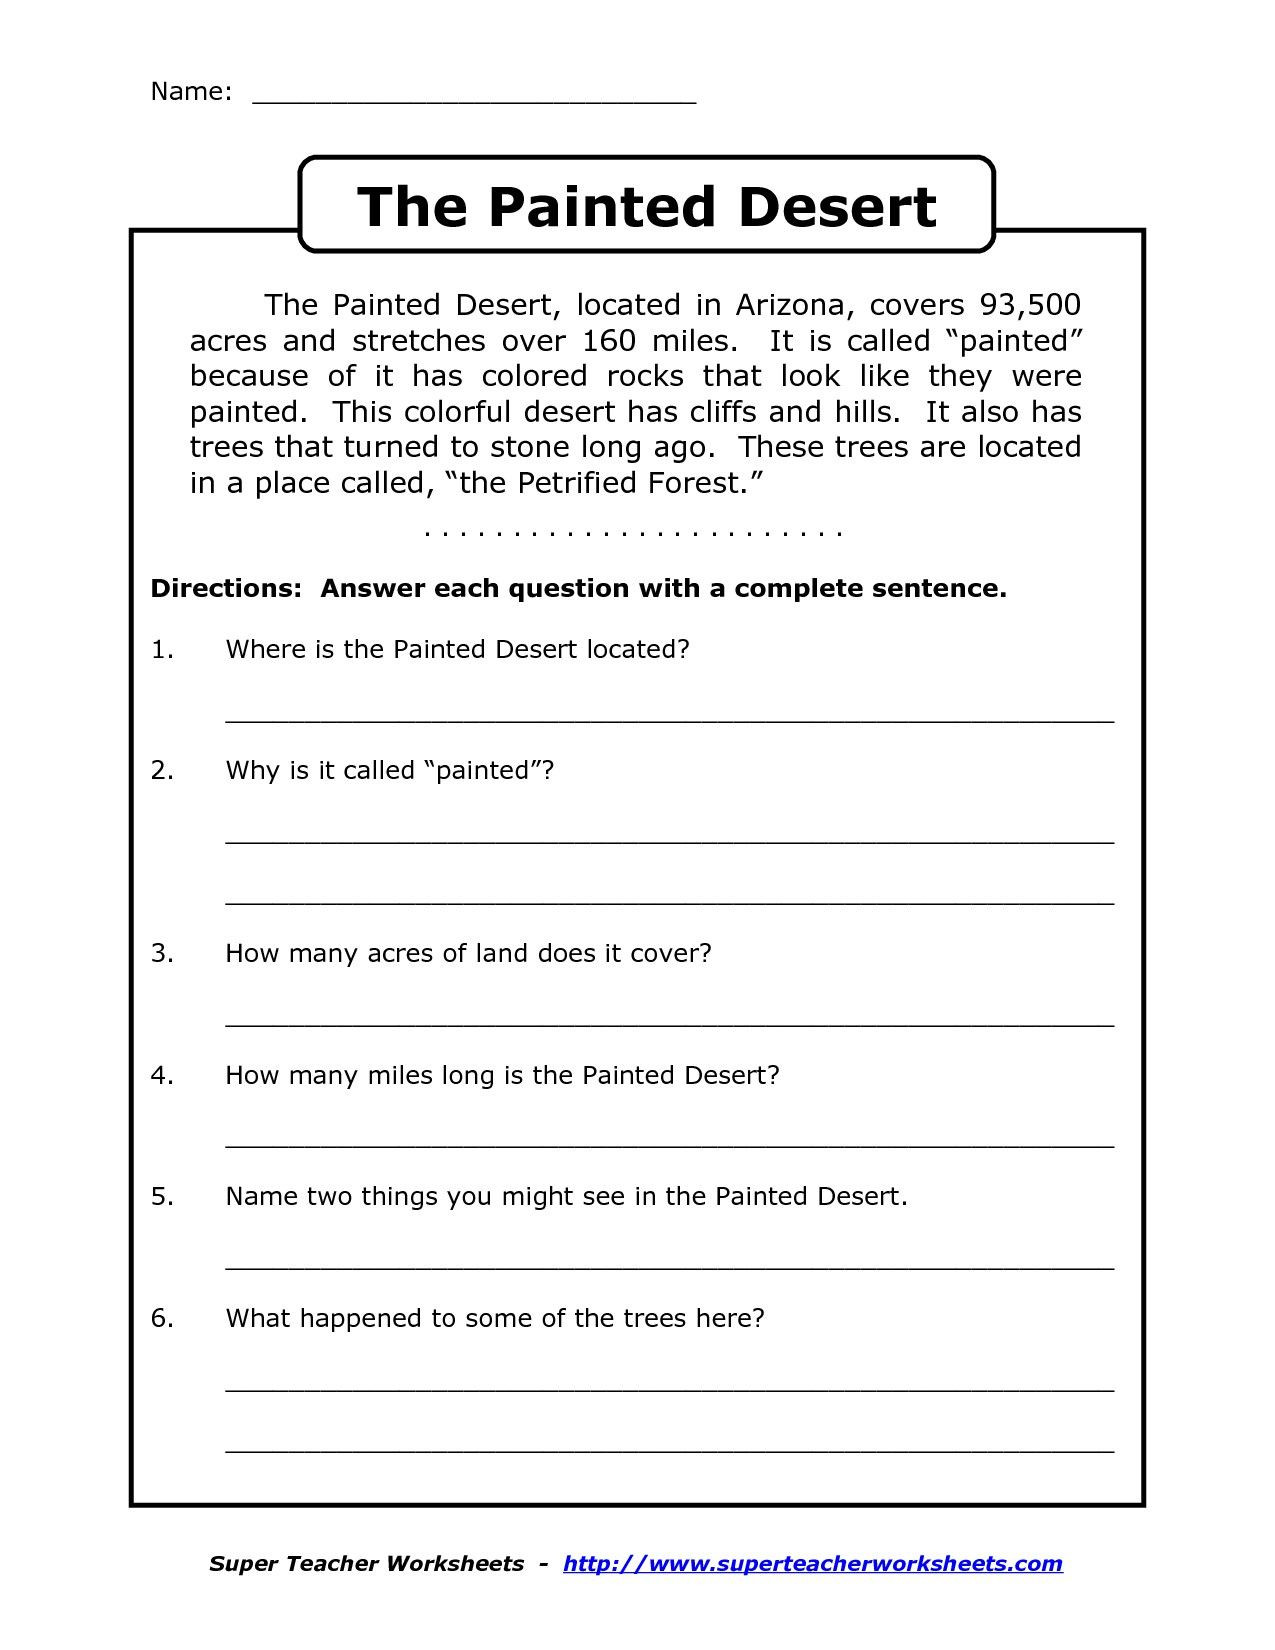 Editing Worksheets 2nd Grade Prehension Worksheet for 1st Grade Y2 P3 the Painted